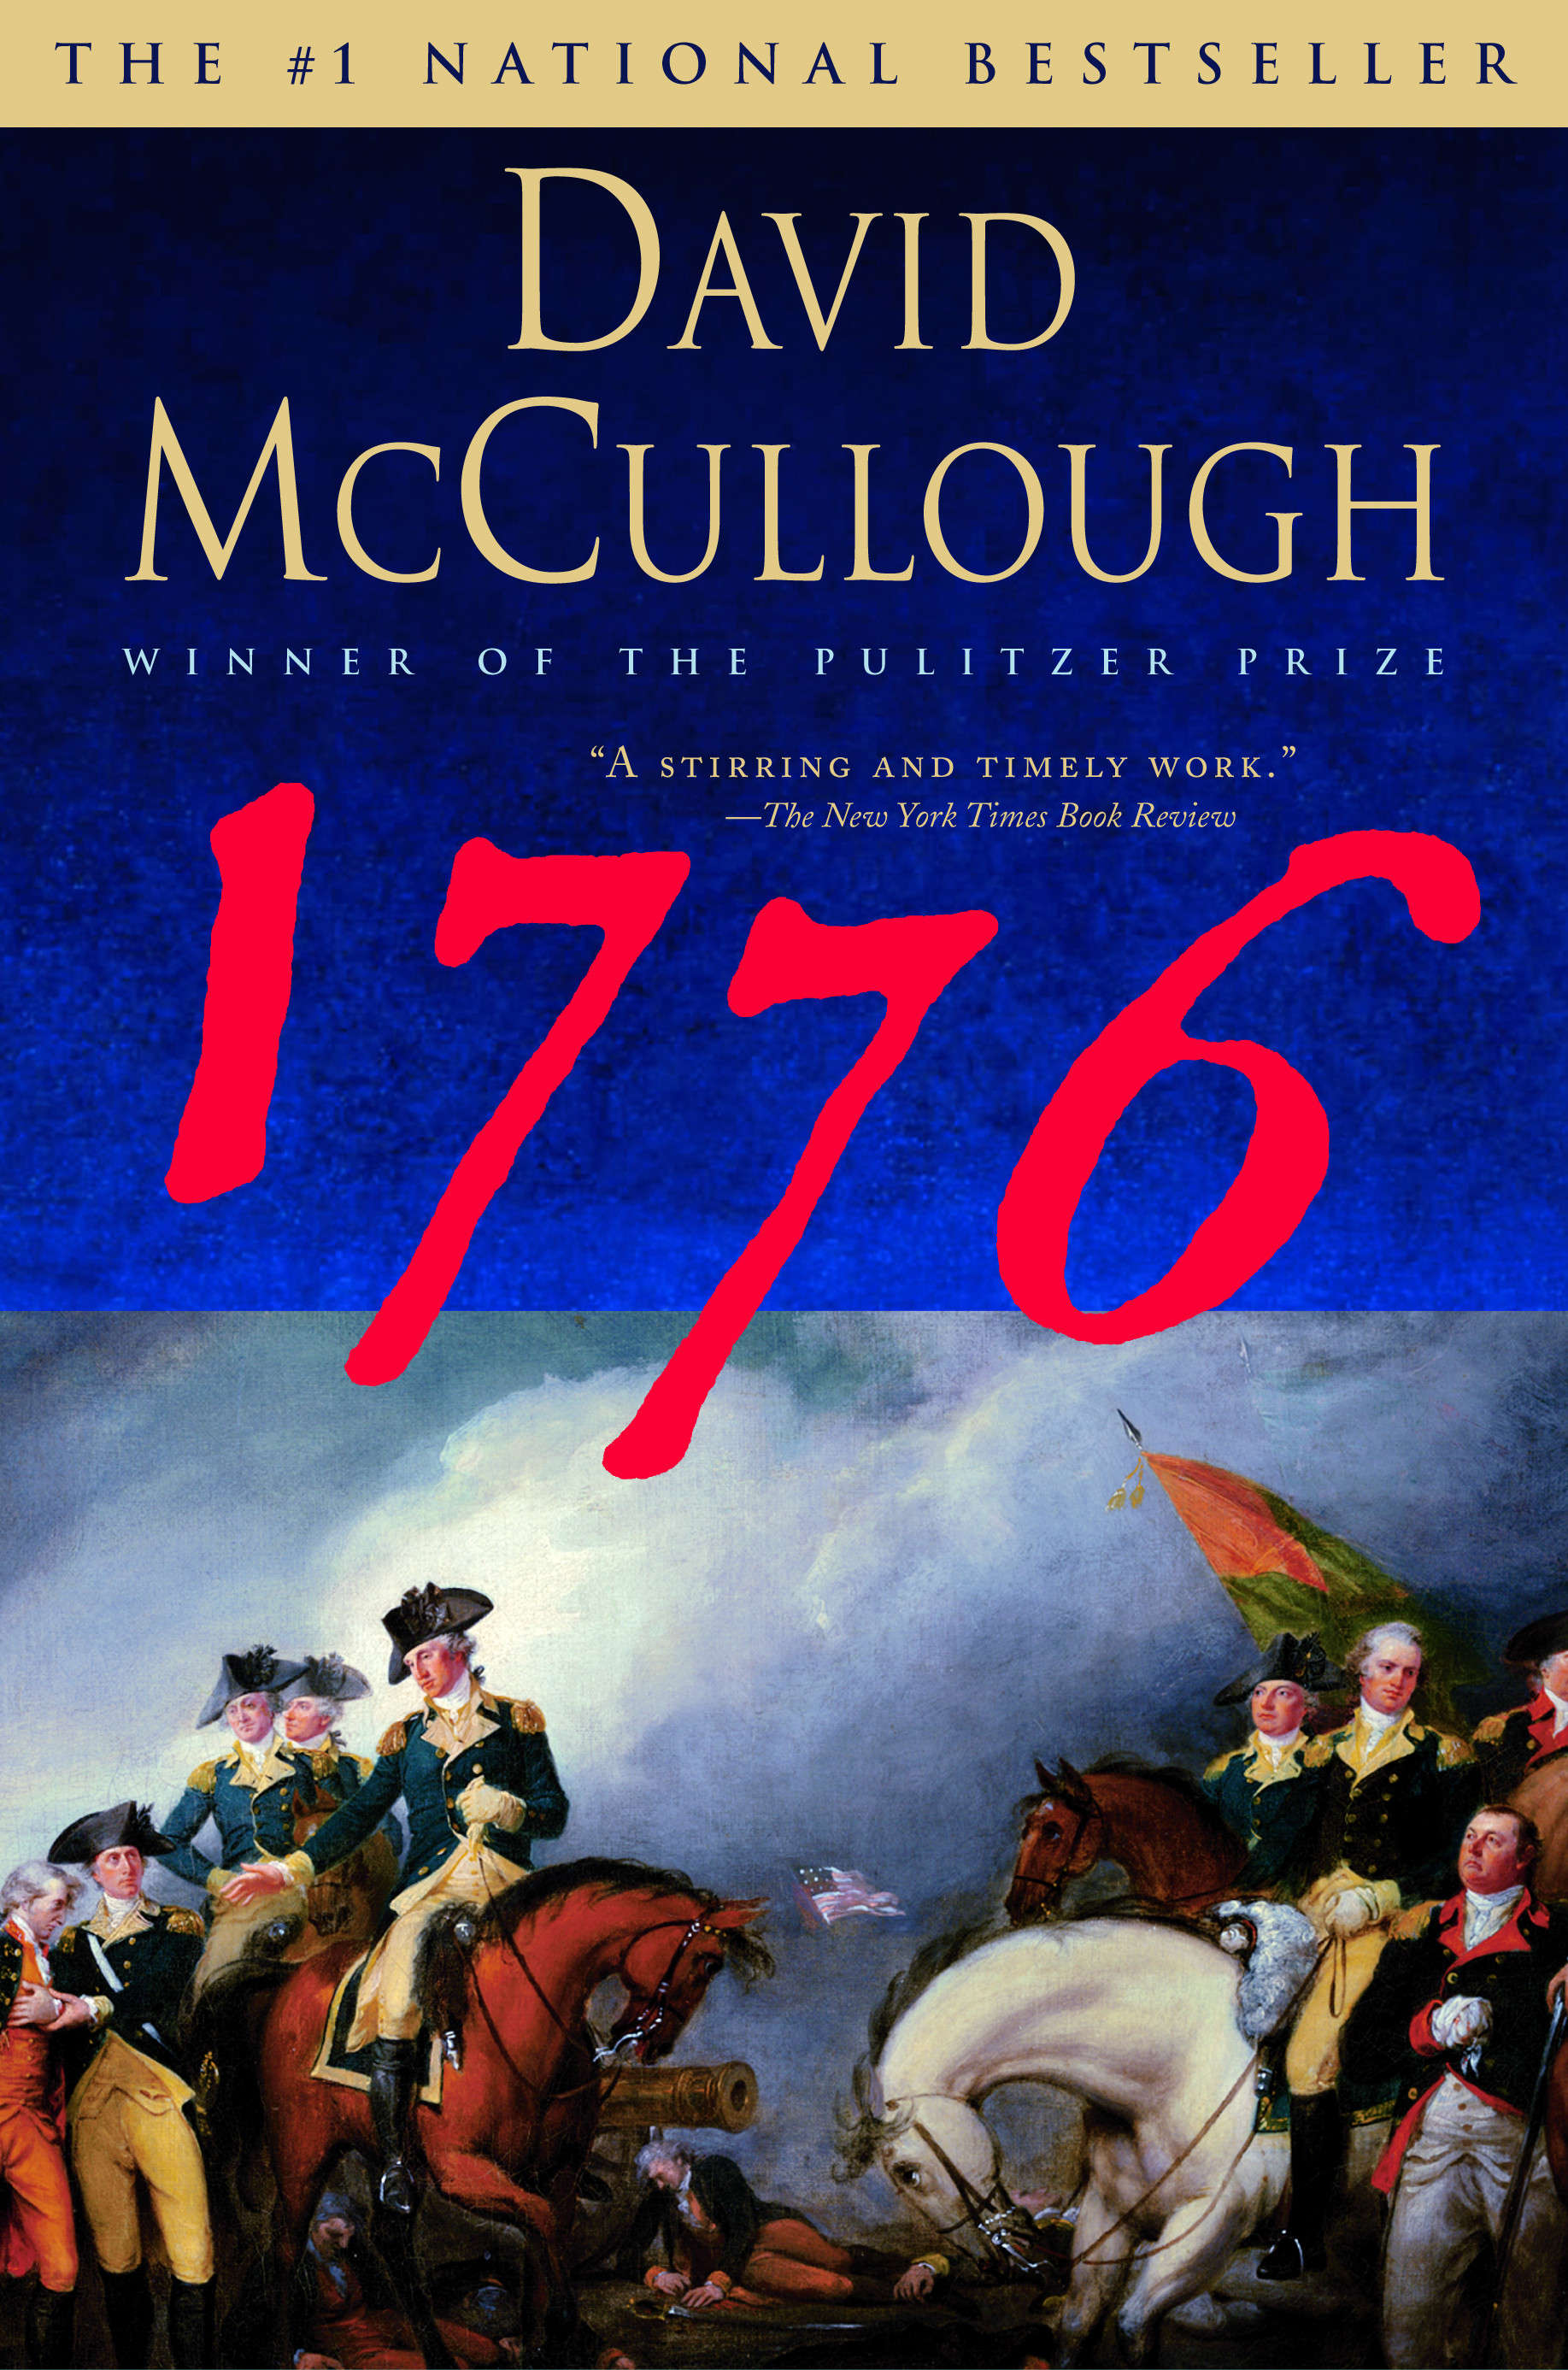 Image result for 1776 mccullough book cover